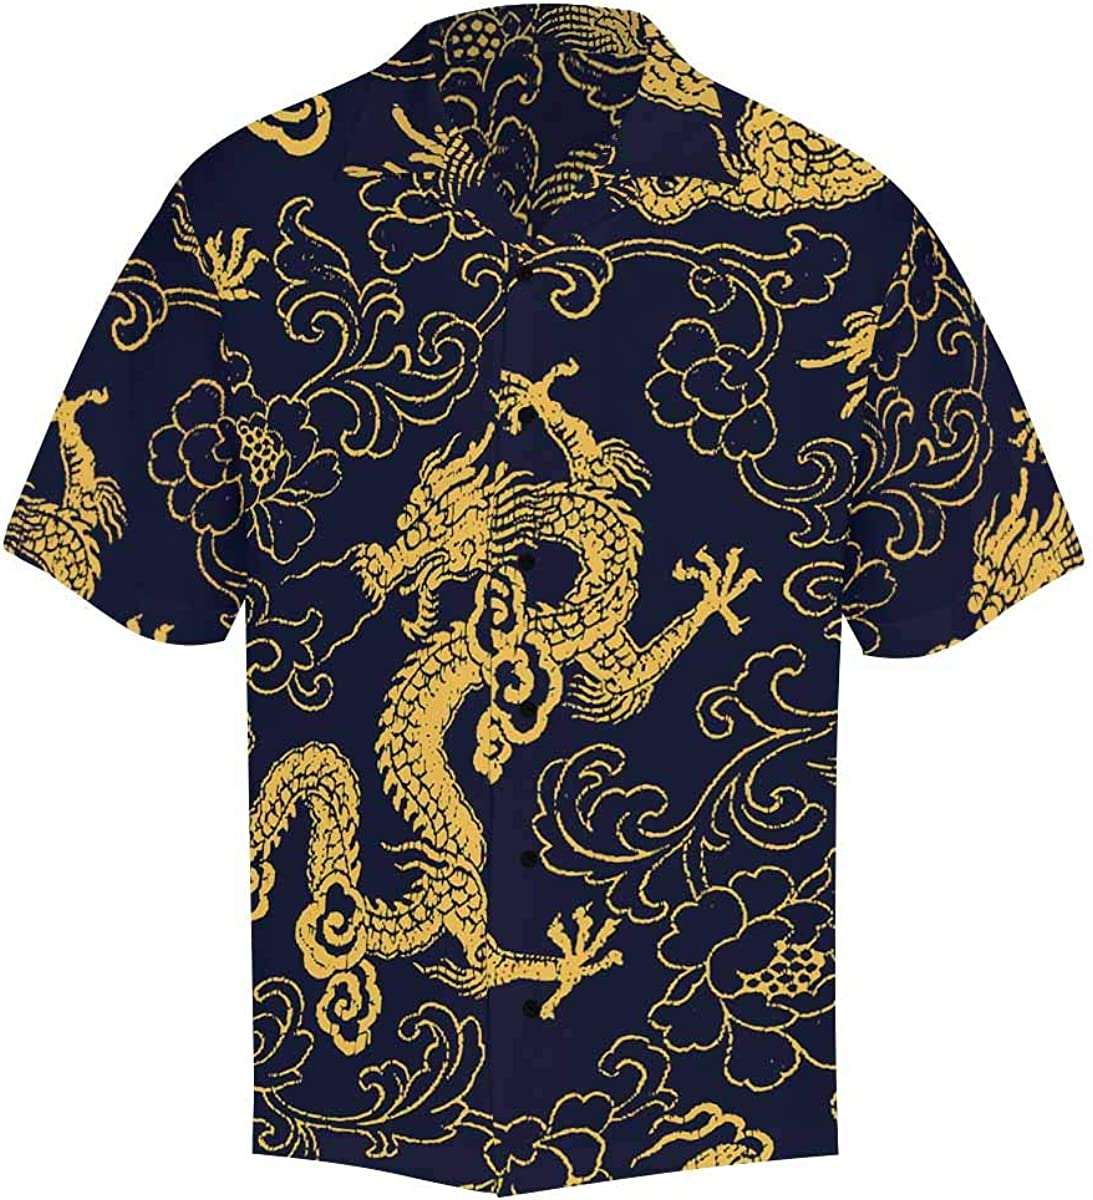 oriental dragon Chinese script classic button up shirt size M